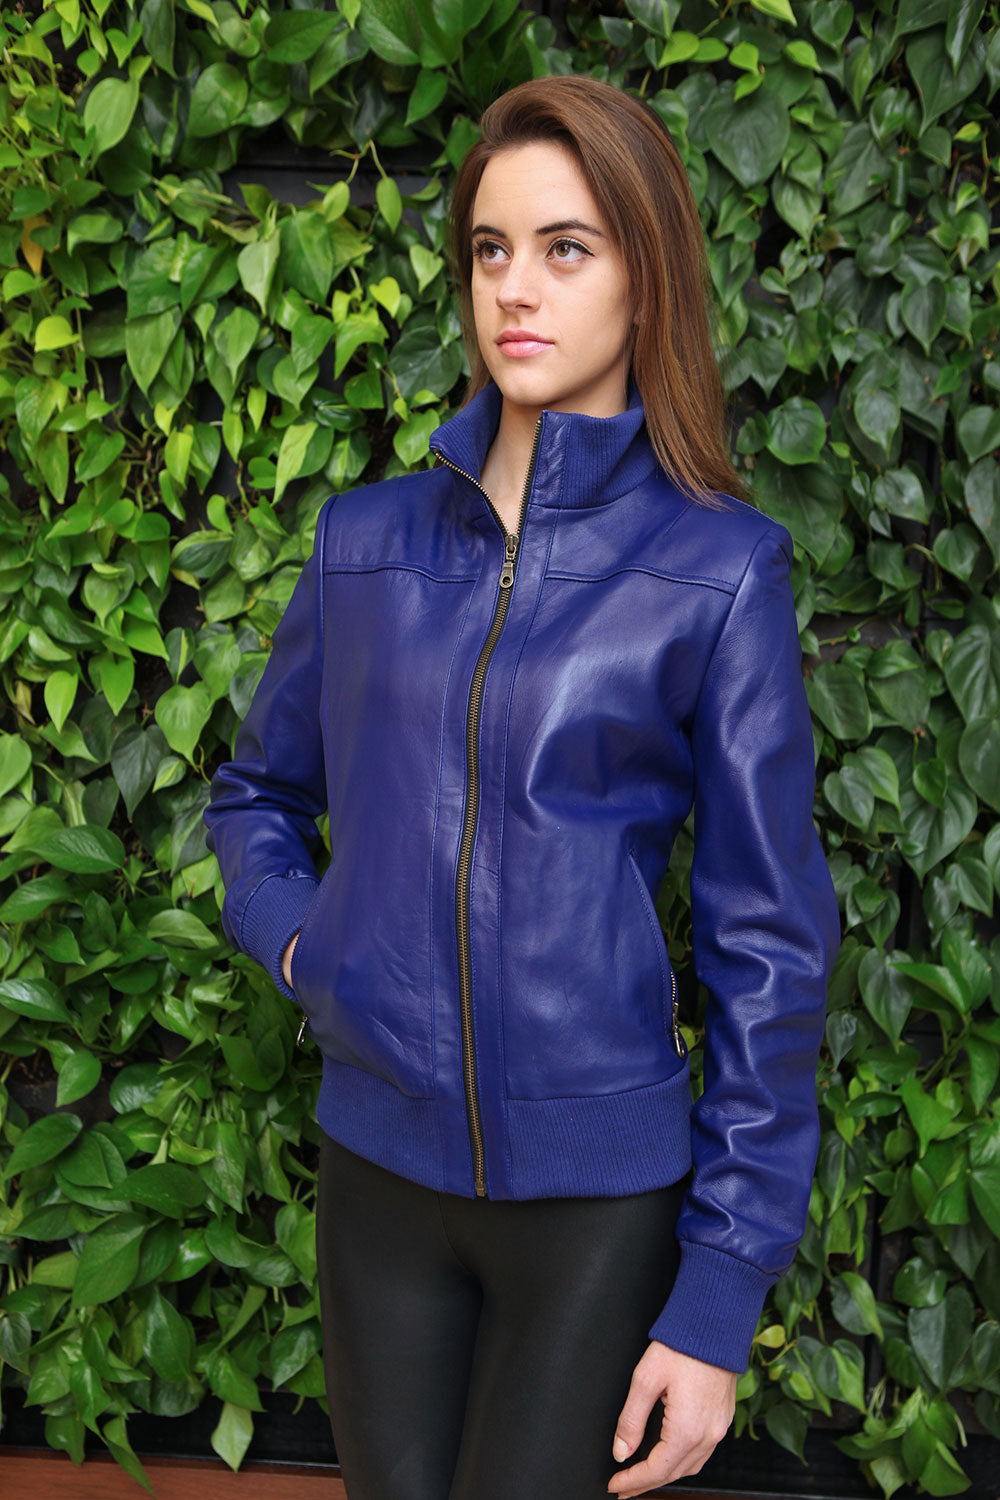 Sleek Cobalt Blue Bomber Jacket